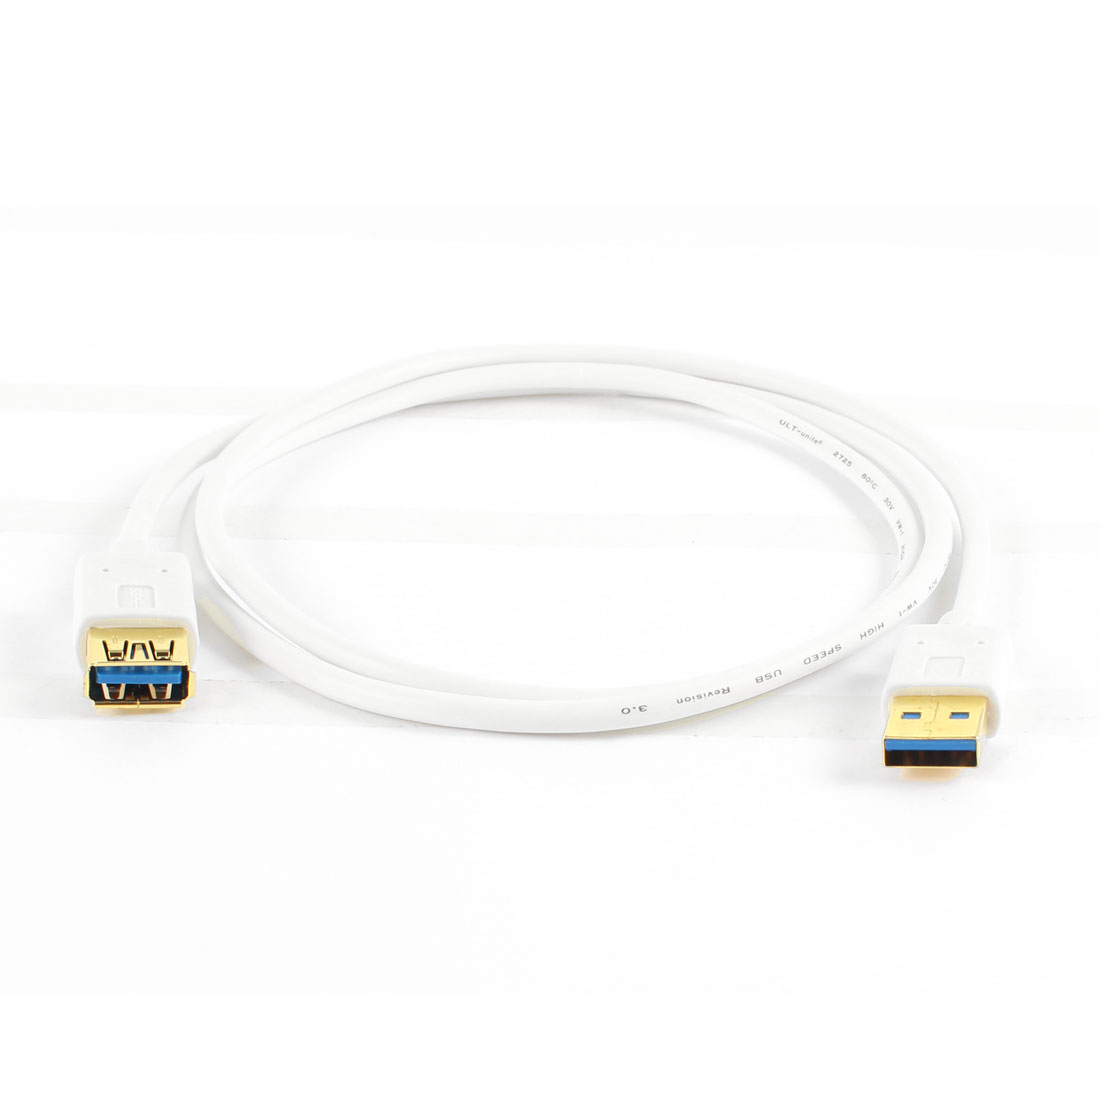 Gold Plated USB 3.0 A Male to Female Extension Cable Adapter White 3.28Ft